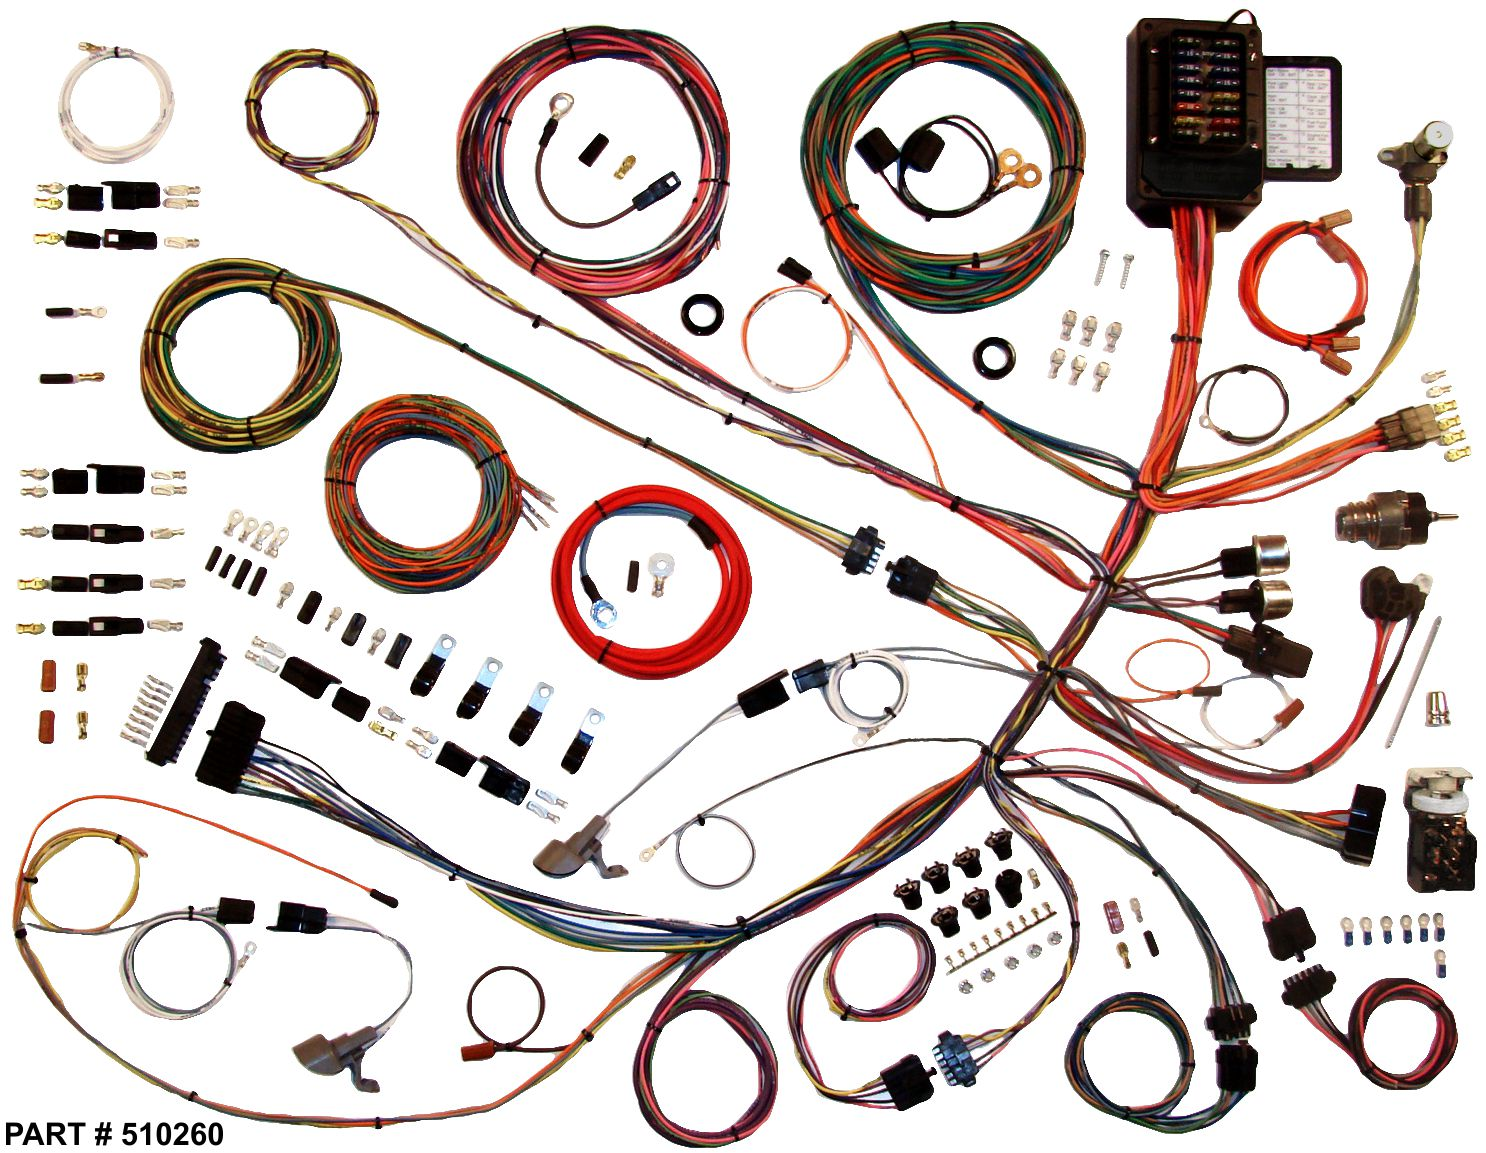 1961 66_510260 1961 1966 ford trucks restomod wiring system 1959 ford f100 wiring harness at bayanpartner.co